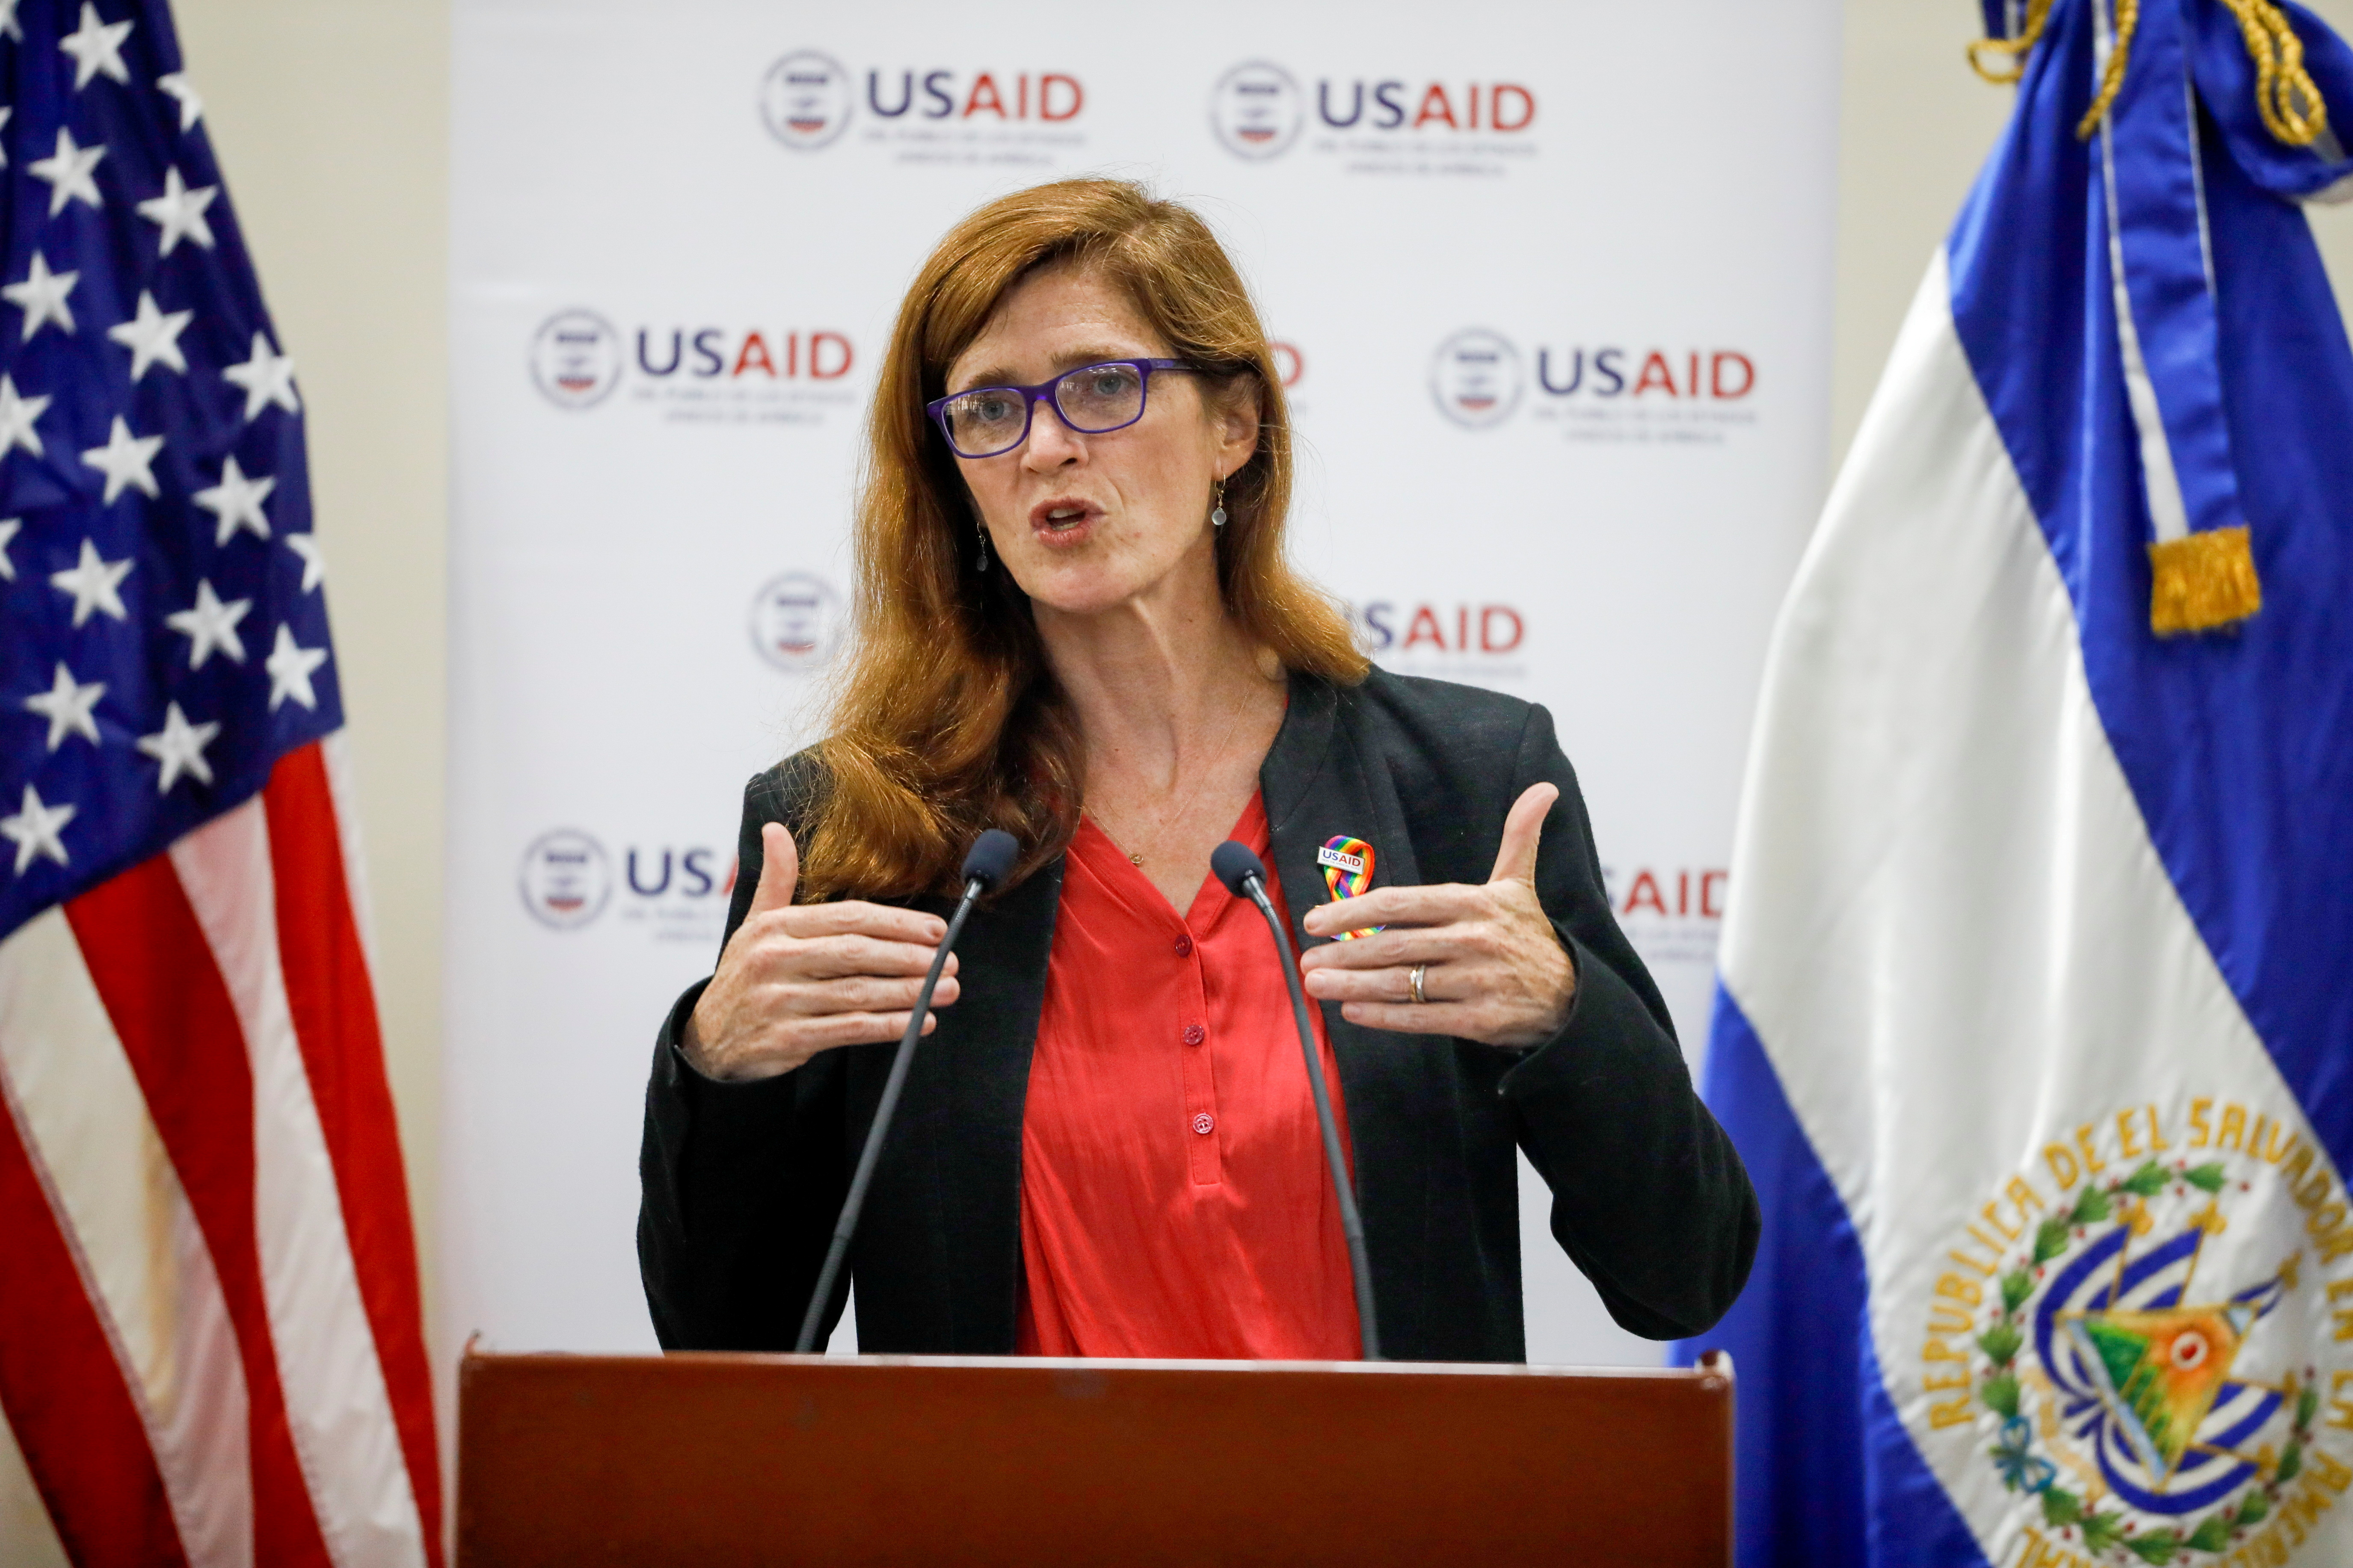 Samantha Power, administrator of the United States Agency for International Development, delivers a speech during a visit to El Salvador at the Central American University in San Salvador, El Salvador June 14, 2021. REUTERS/Jose Cabezas/File Photo